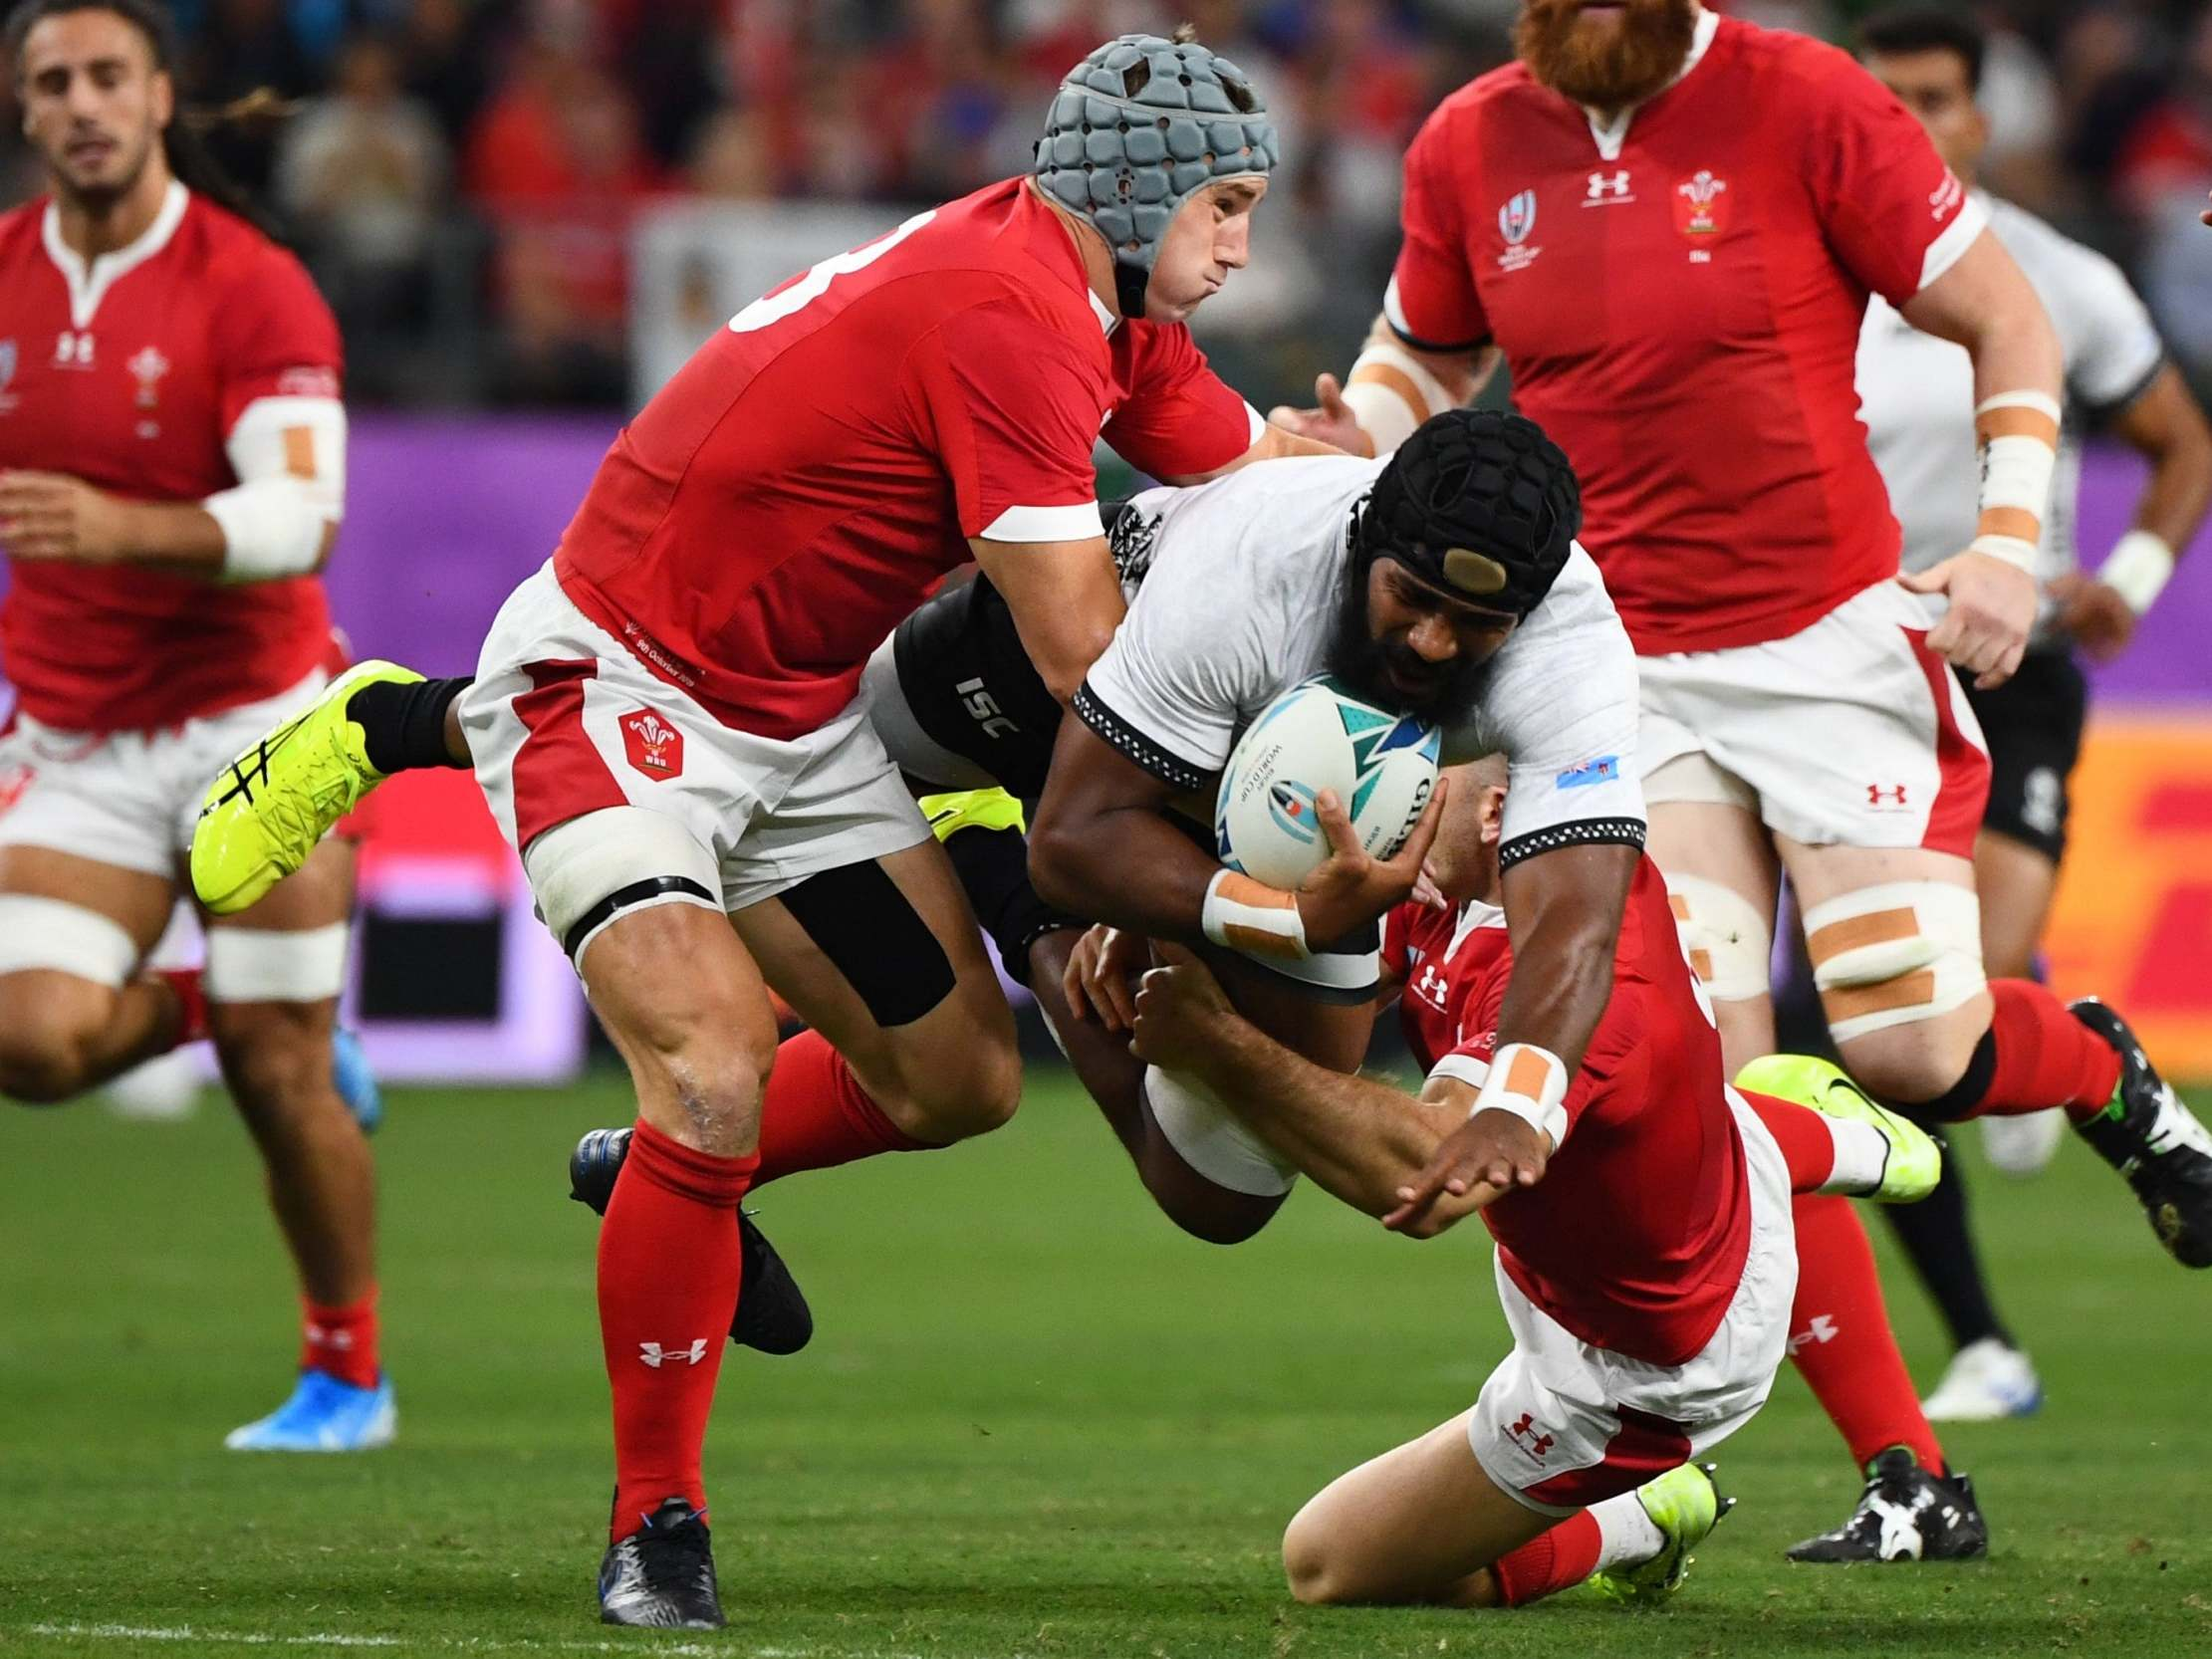 Wales vs Fiji, Rugby World Cup 2019 LIVE: Latest score and updates from today's Pool D fixture